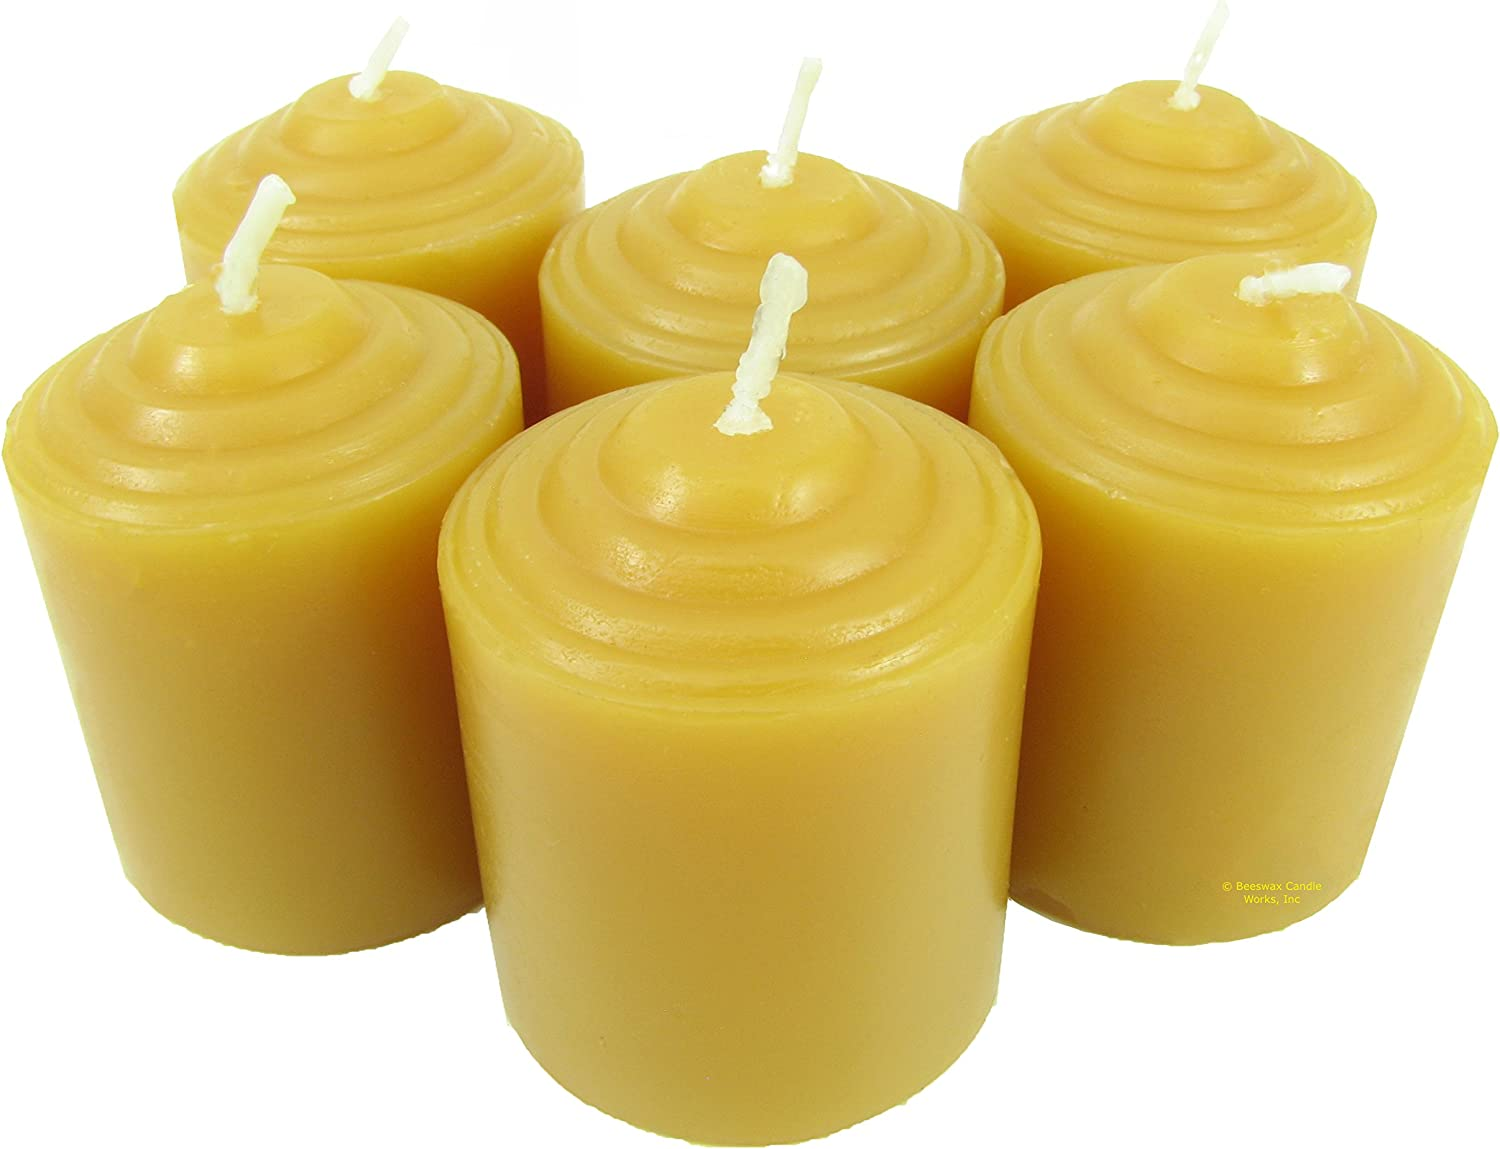 candles as wedding decor united with love.htm amazon com beeswax candle works 10 hour votives 12 pack 100  amazon com beeswax candle works 10